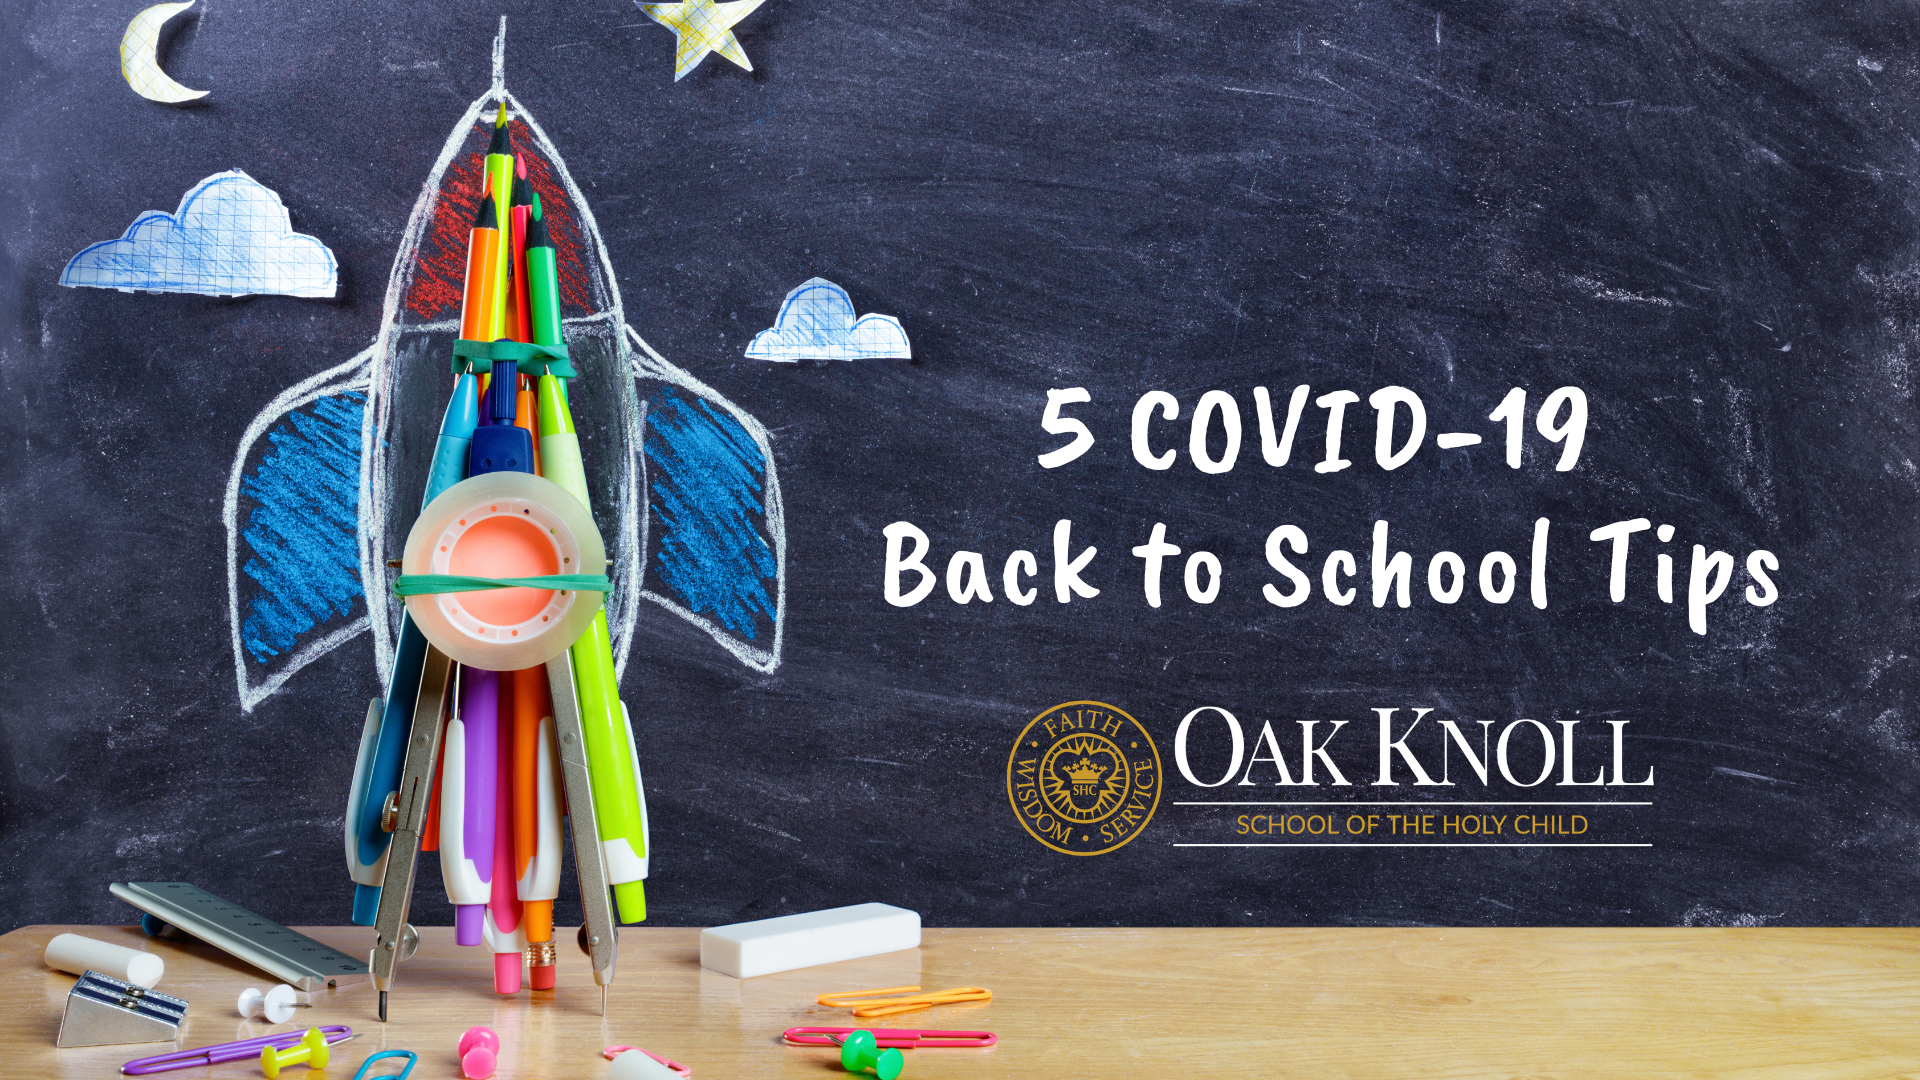 5 COVID-19 Back to School Tips